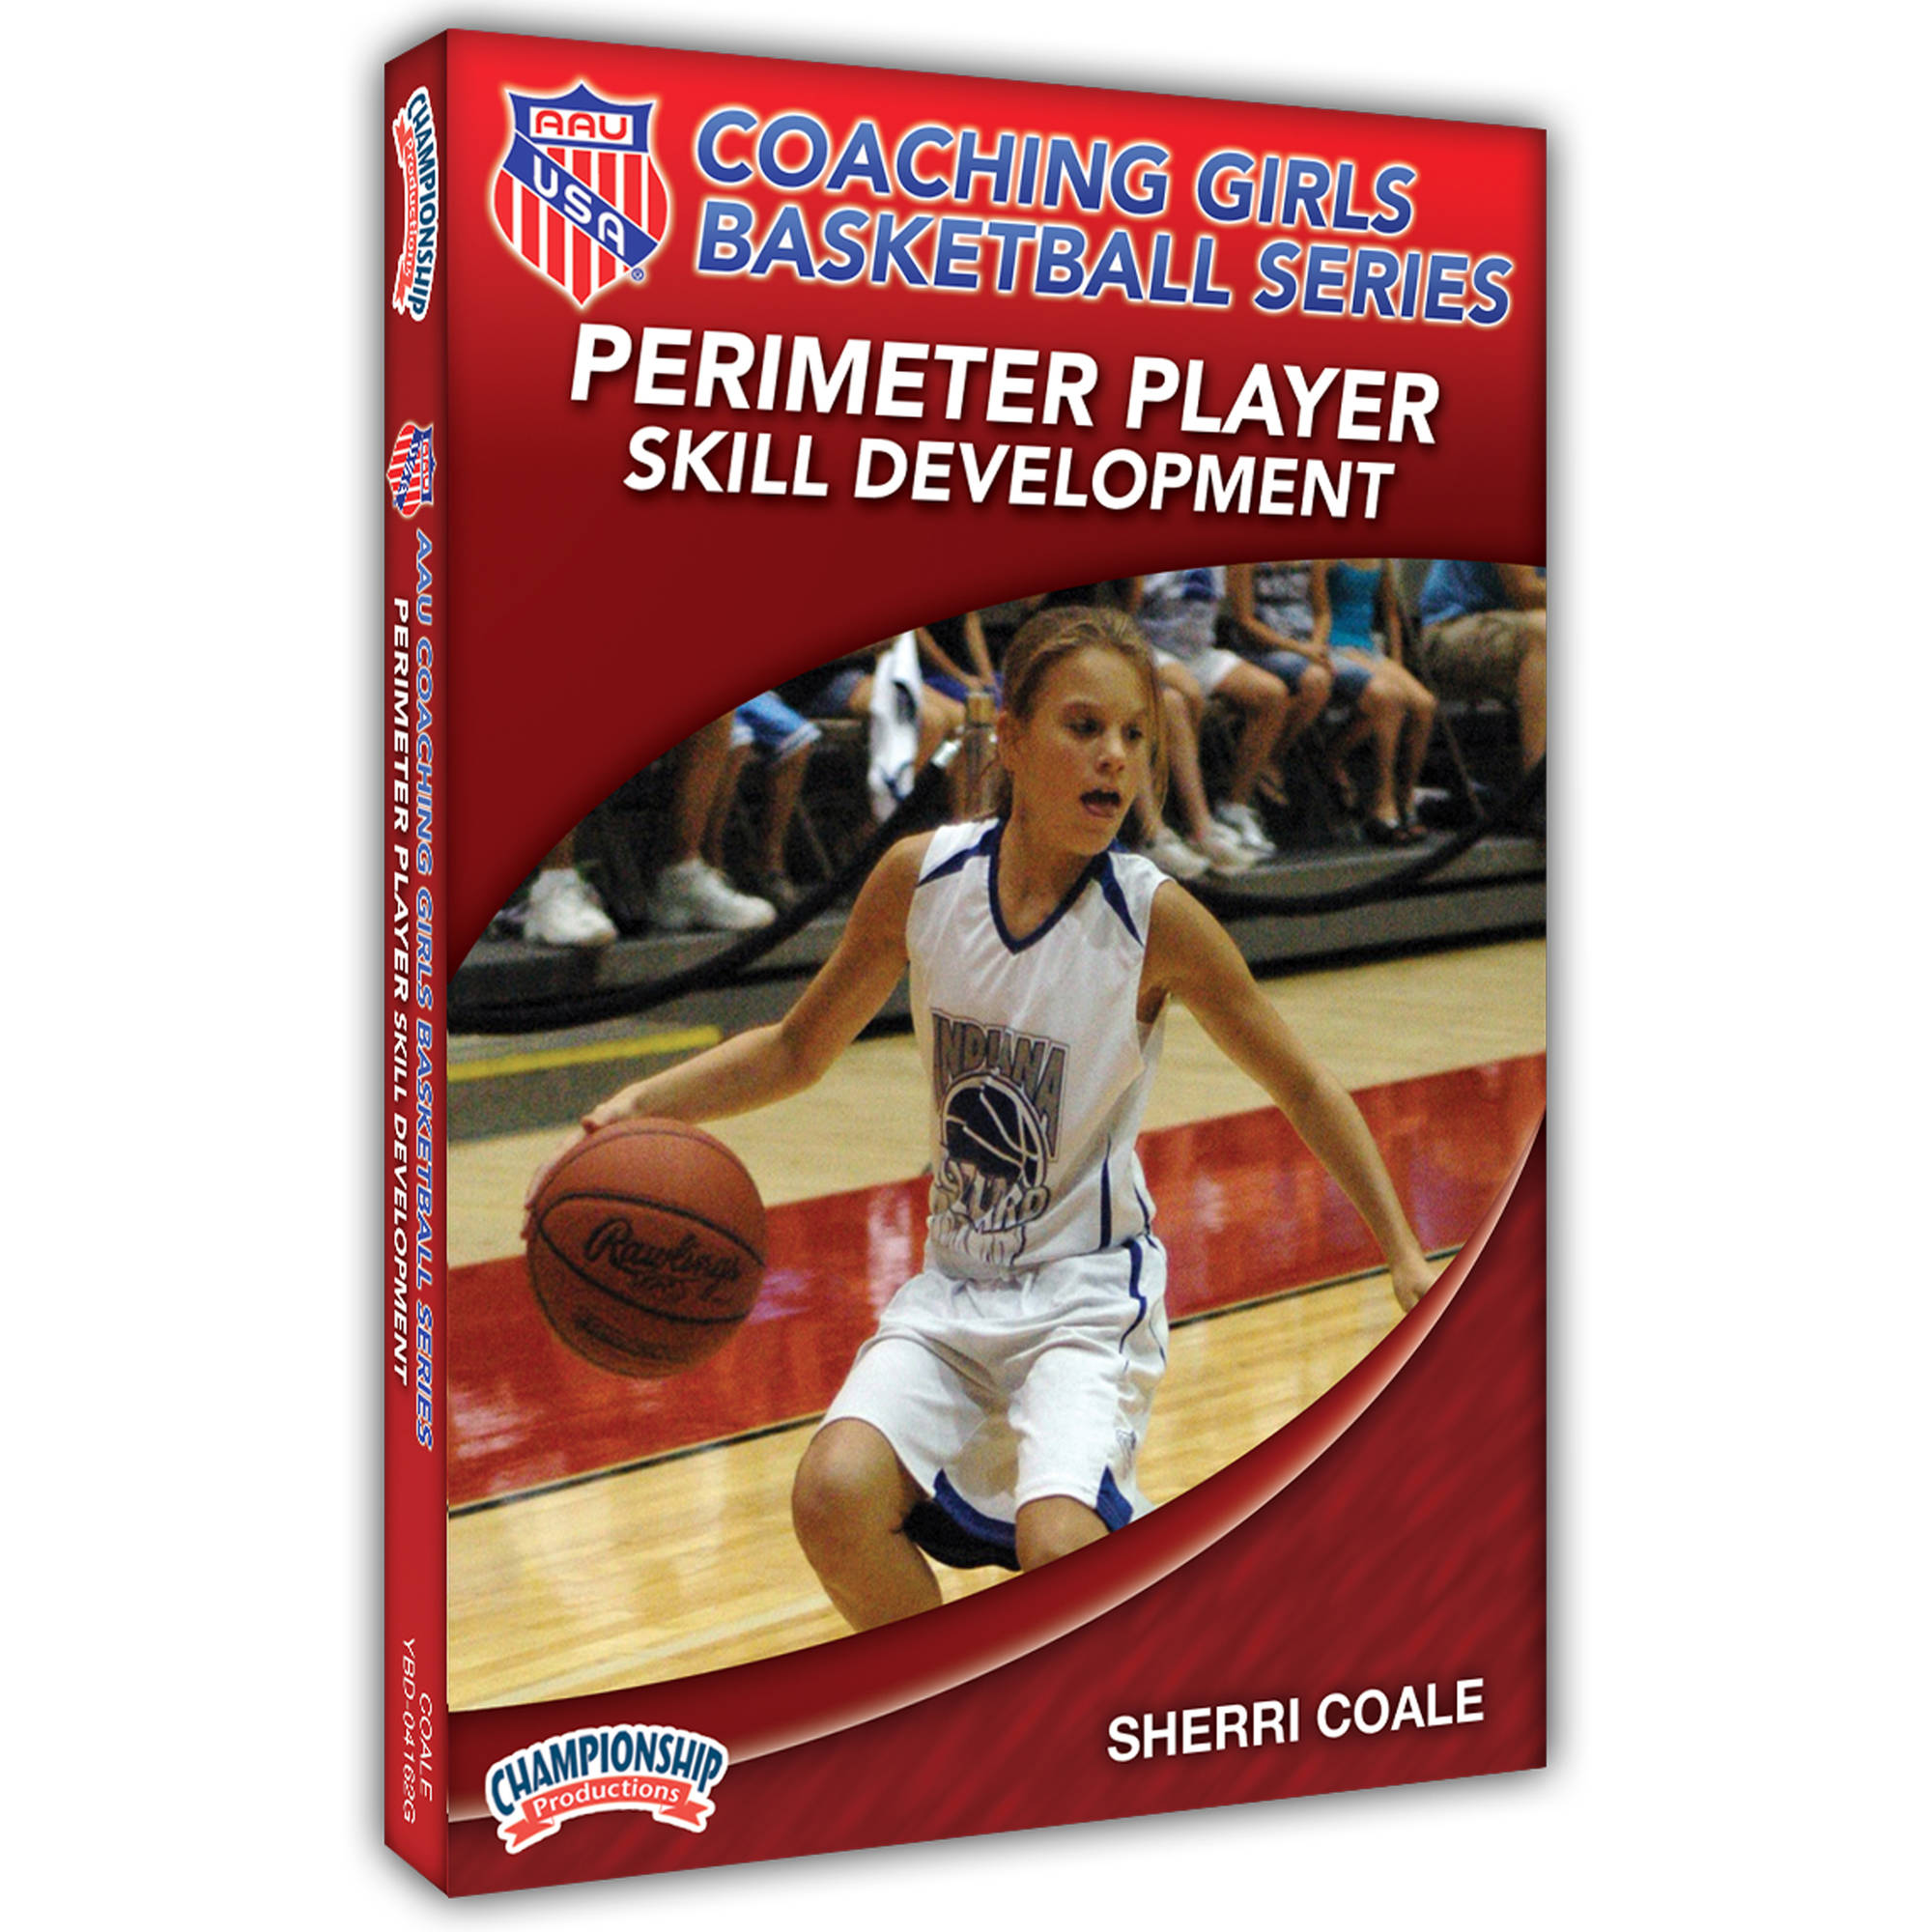 AAU Coaching Girls Basketball Series: Perimeter Player Skill Development by Championship Productions